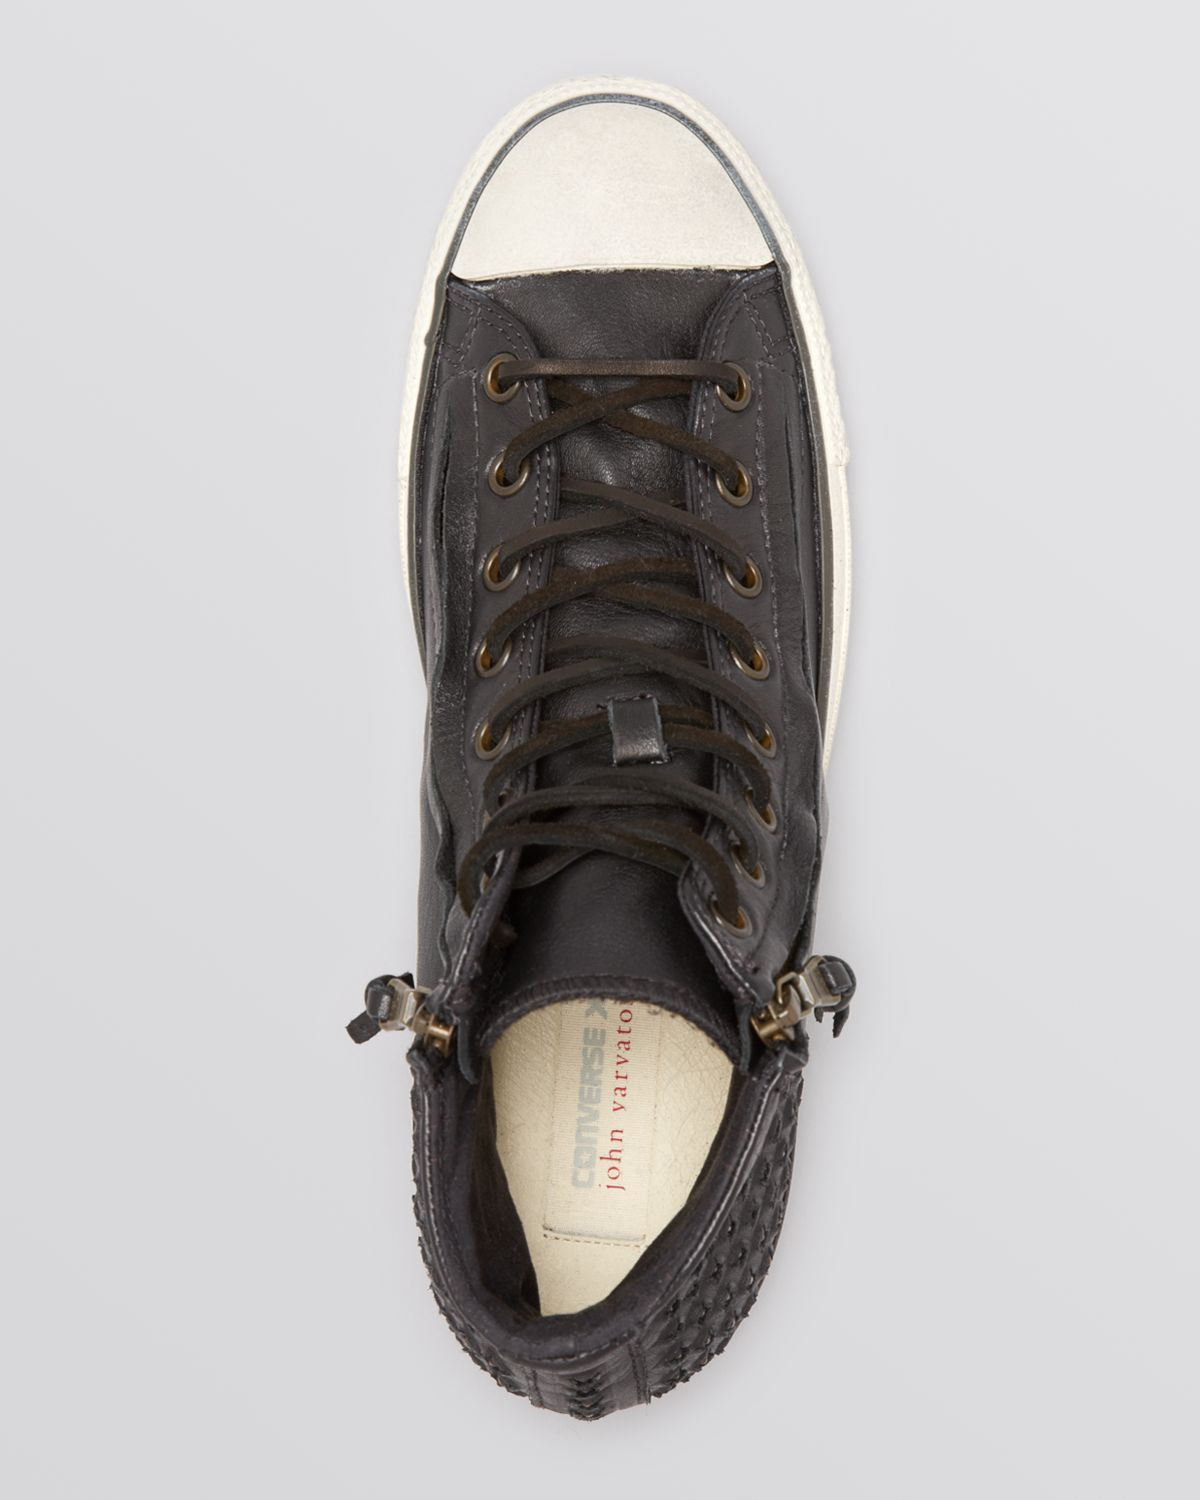 Converse Chuck Taylor All Star Double Zip High Top Sneakers in ...